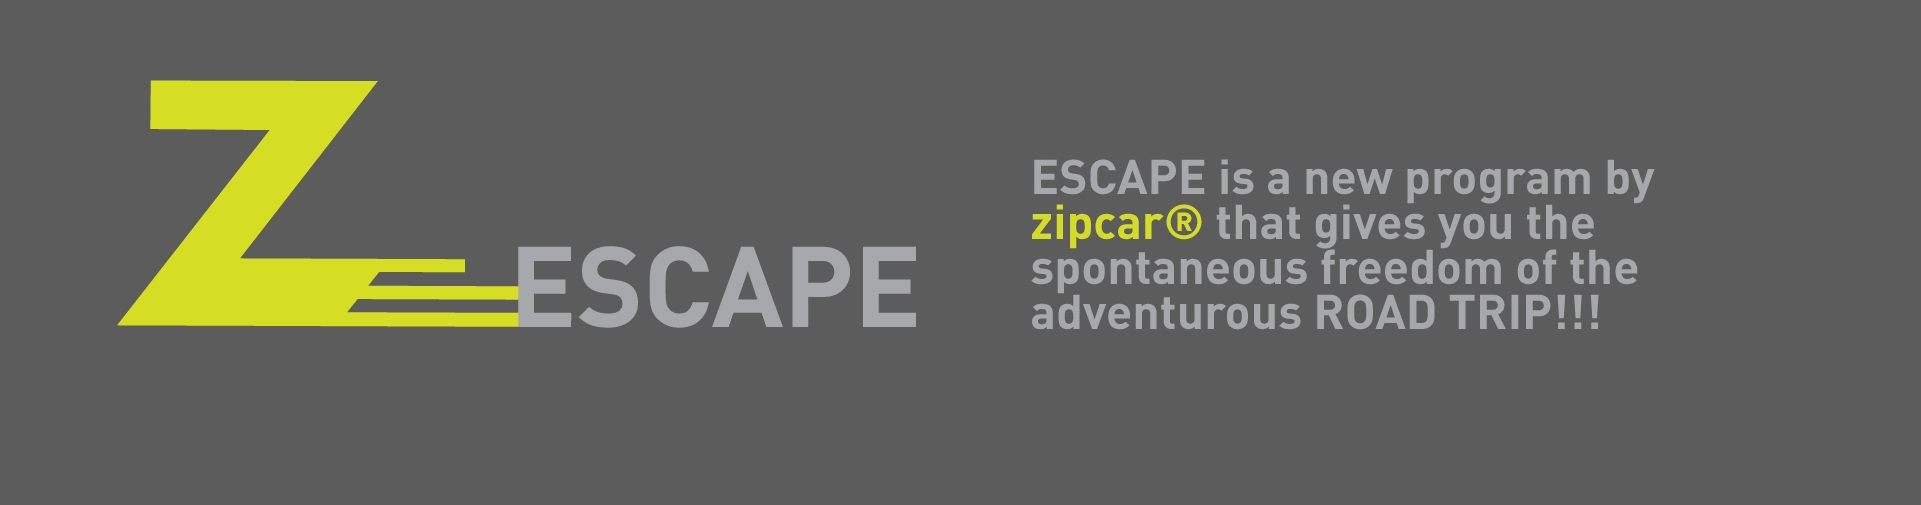 CONCEPT   ESCAPE provides a fun experience that allow college students to design their own journey. They will be able to customize everything from destination to sight options, music, things to pack, and finally a perfect zipcar for them.